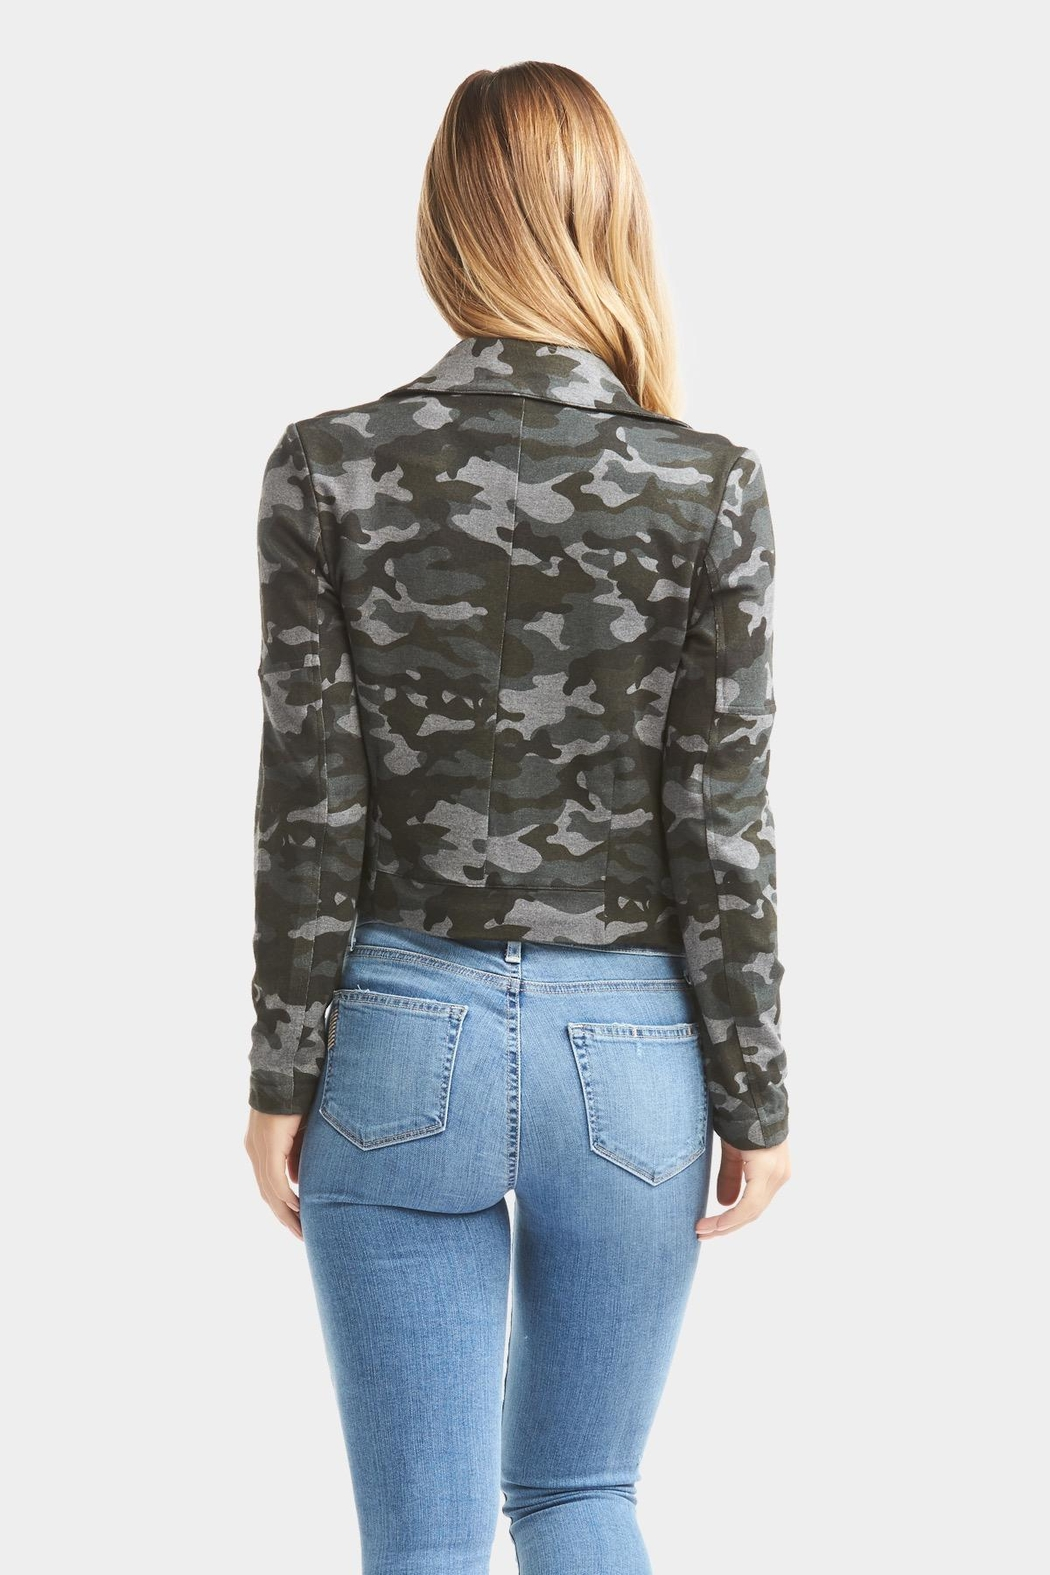 Tart Collections Gracia Camo Jacket - Side Cropped Image